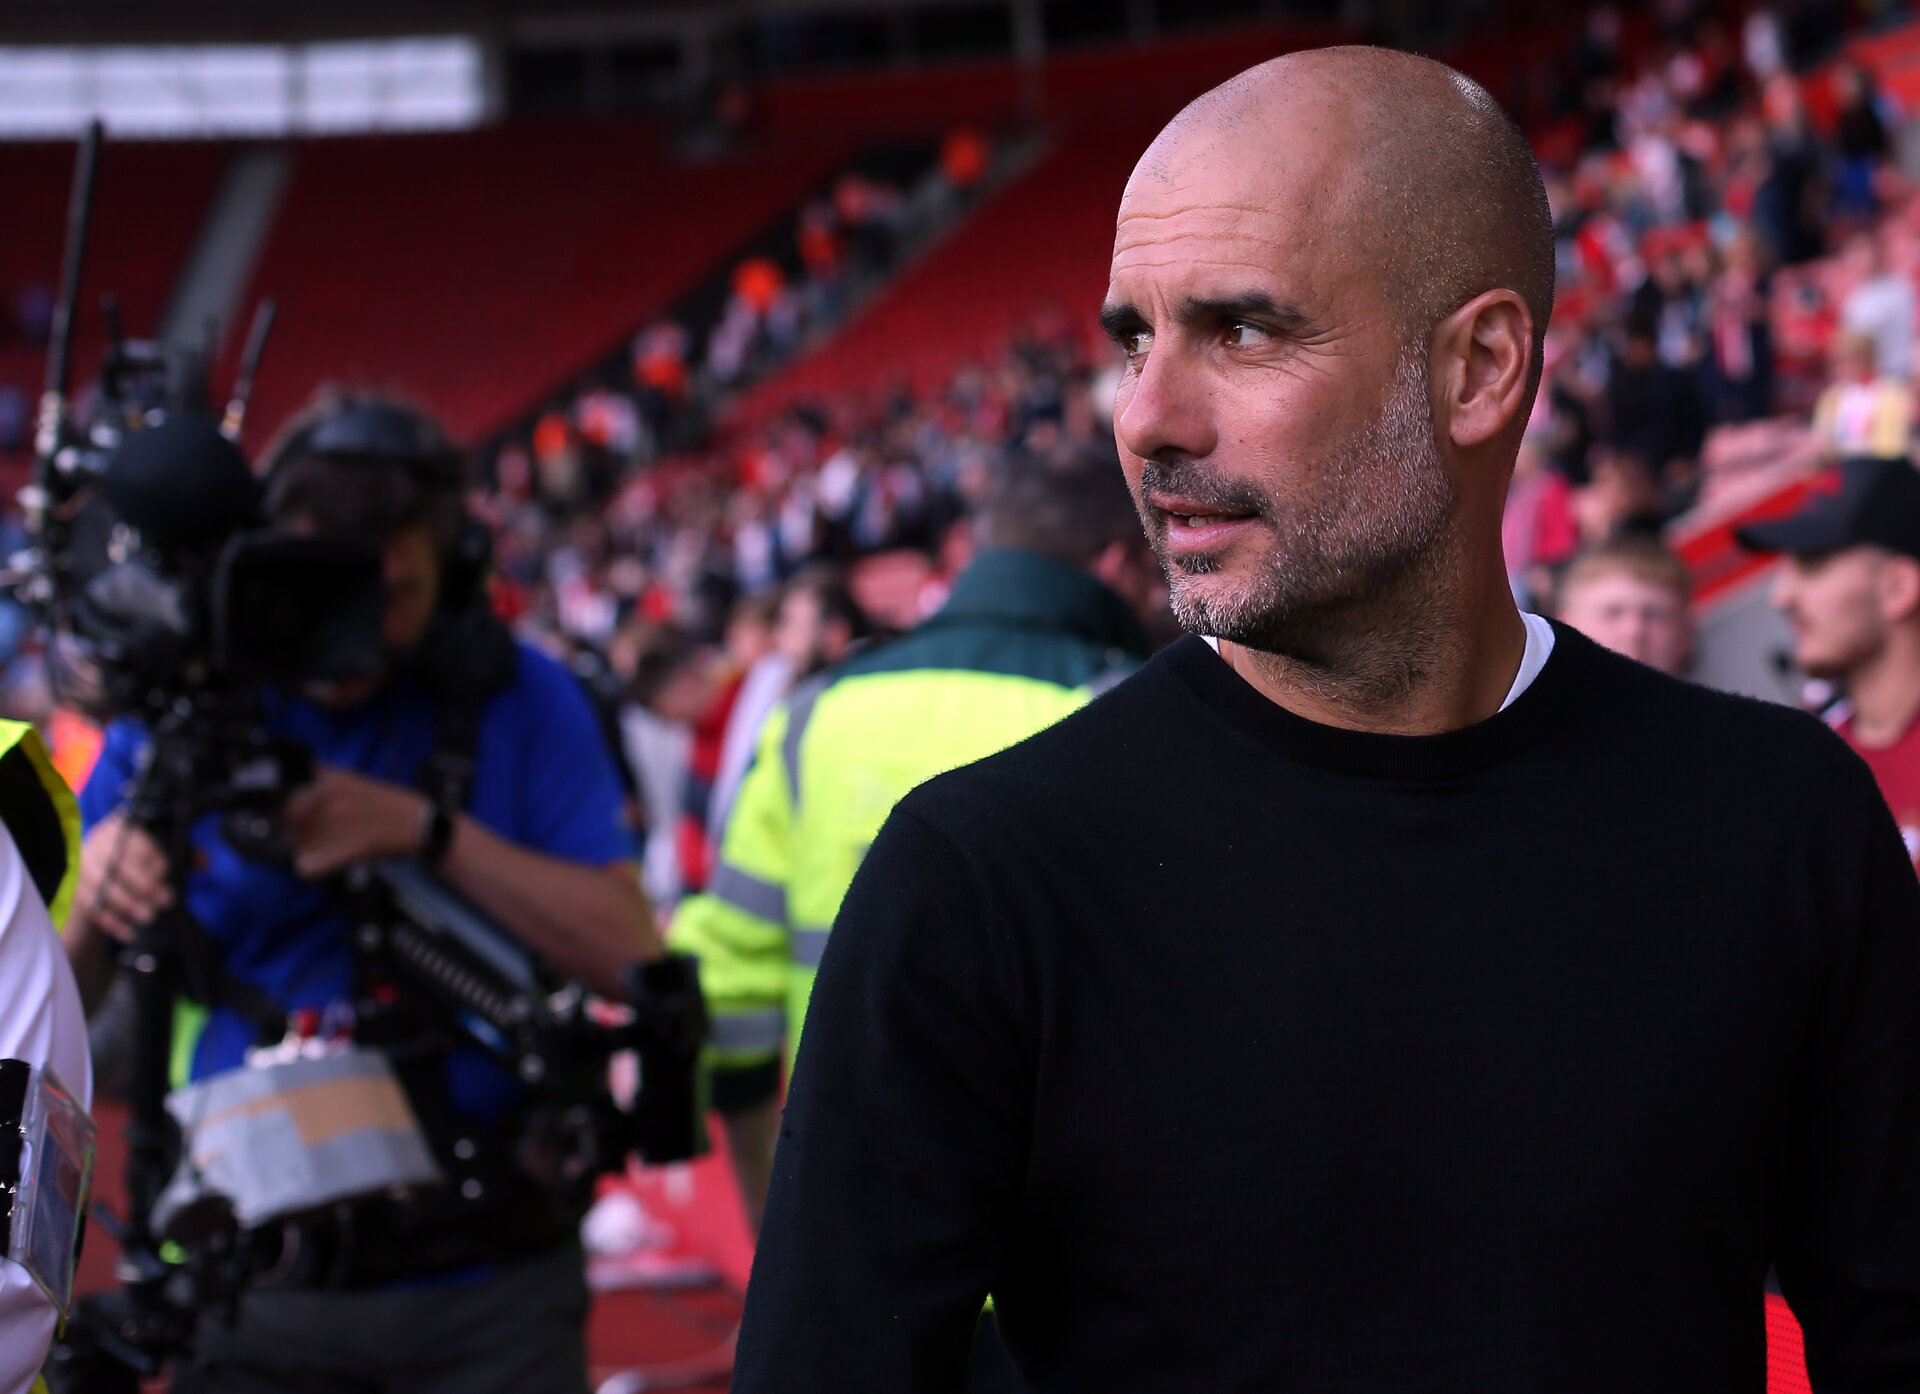 SOUTHAMPTON, ENGLAND - MAY 13: Pep Guardiola during the Premier League match between Southampton and Manchester City at St Mary's Stadium on May 13, 2018 in Southampton, England. (Photo by Chris Moorhouse/Southampton FC via Getty Images)